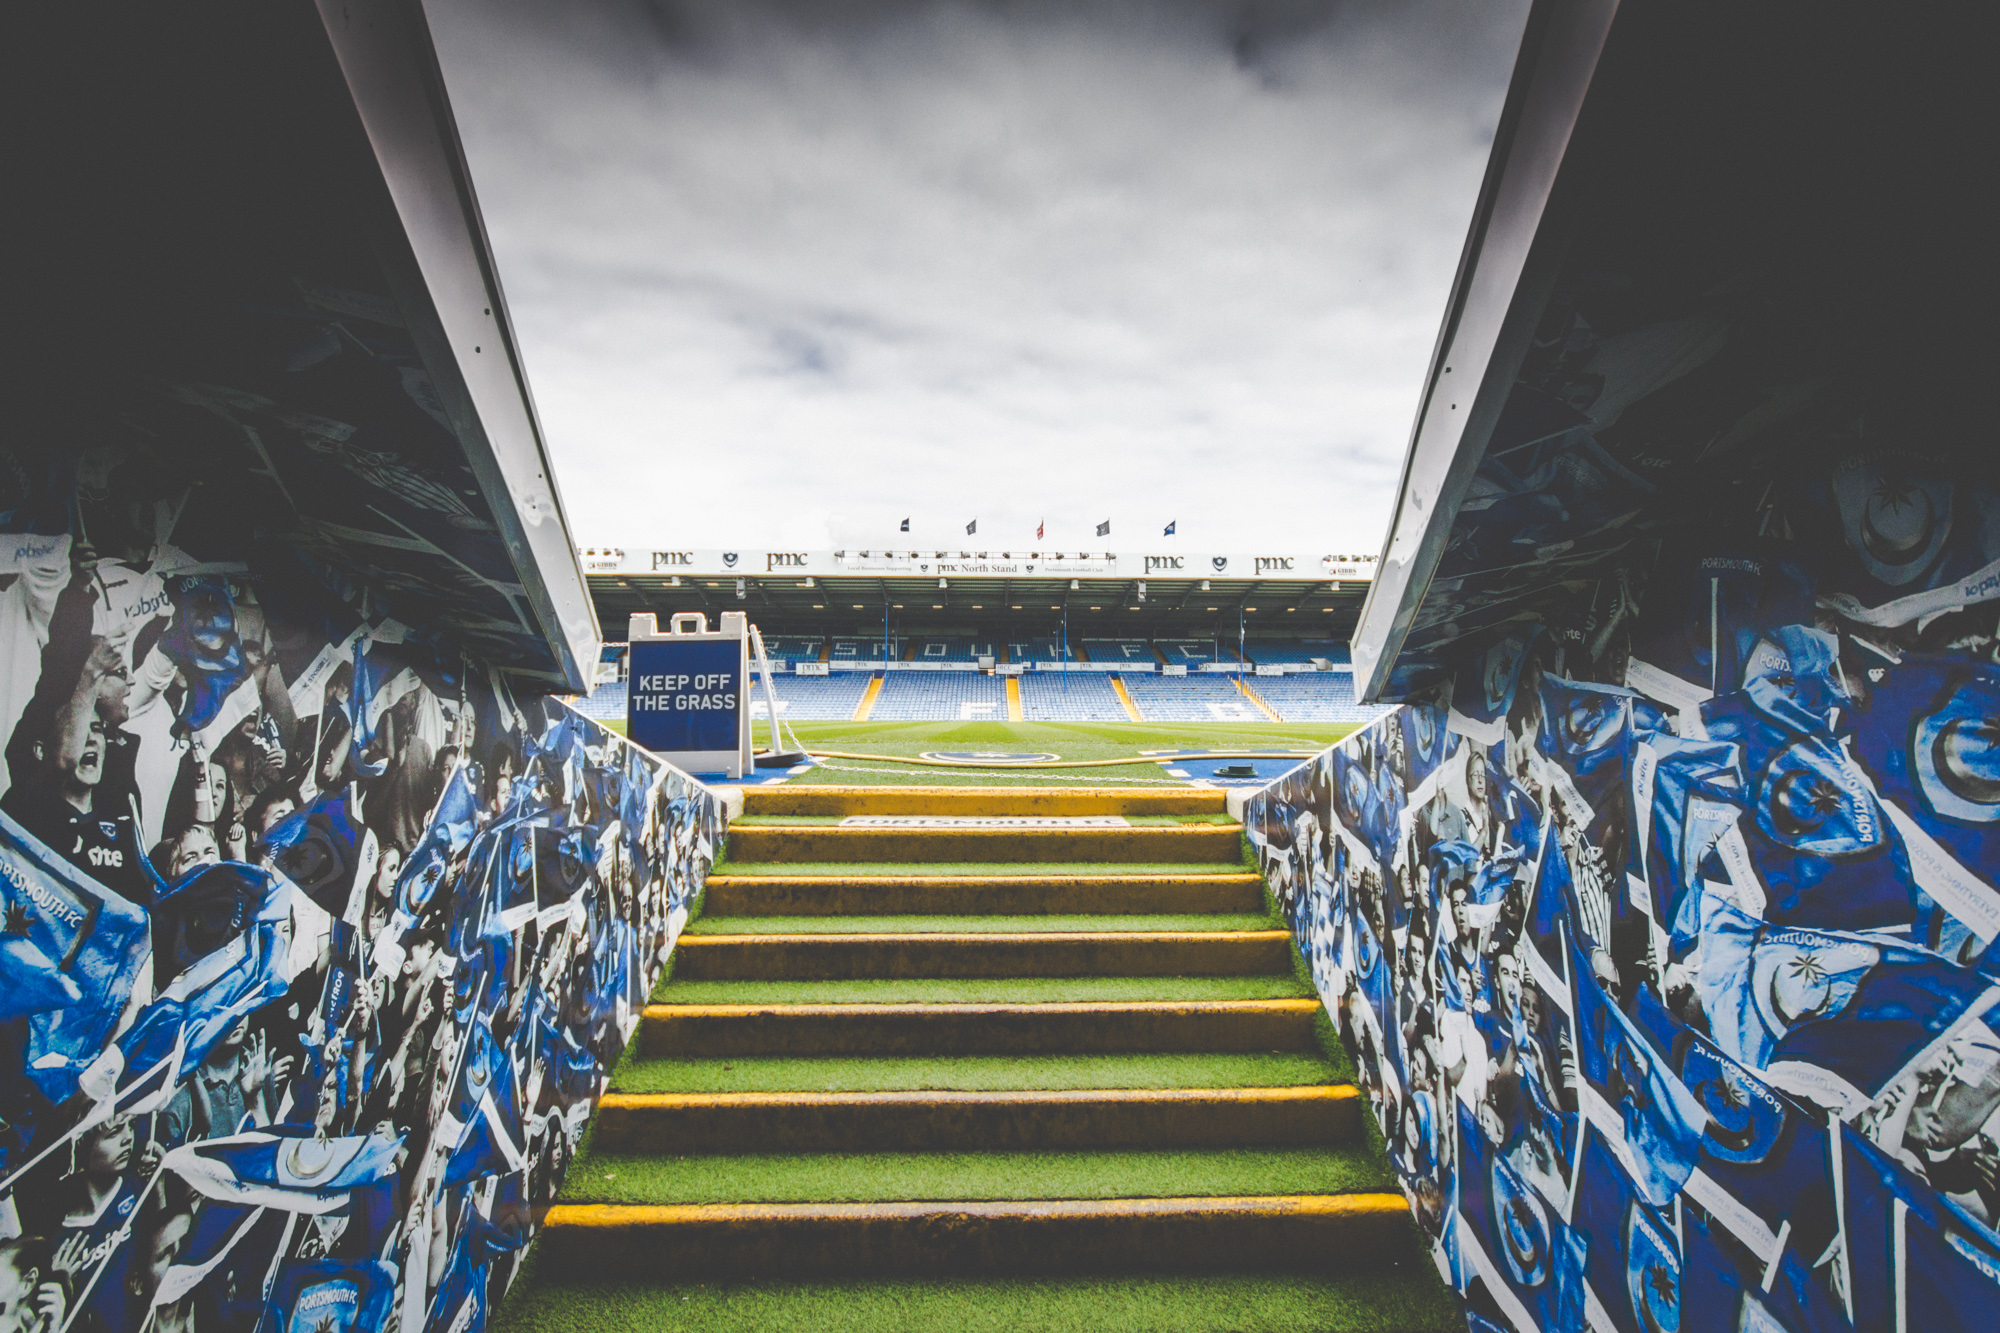 Photo of the Fratton Park pitch as seen from the tunnel. Taken during a Strong Island Photography Walkshop.